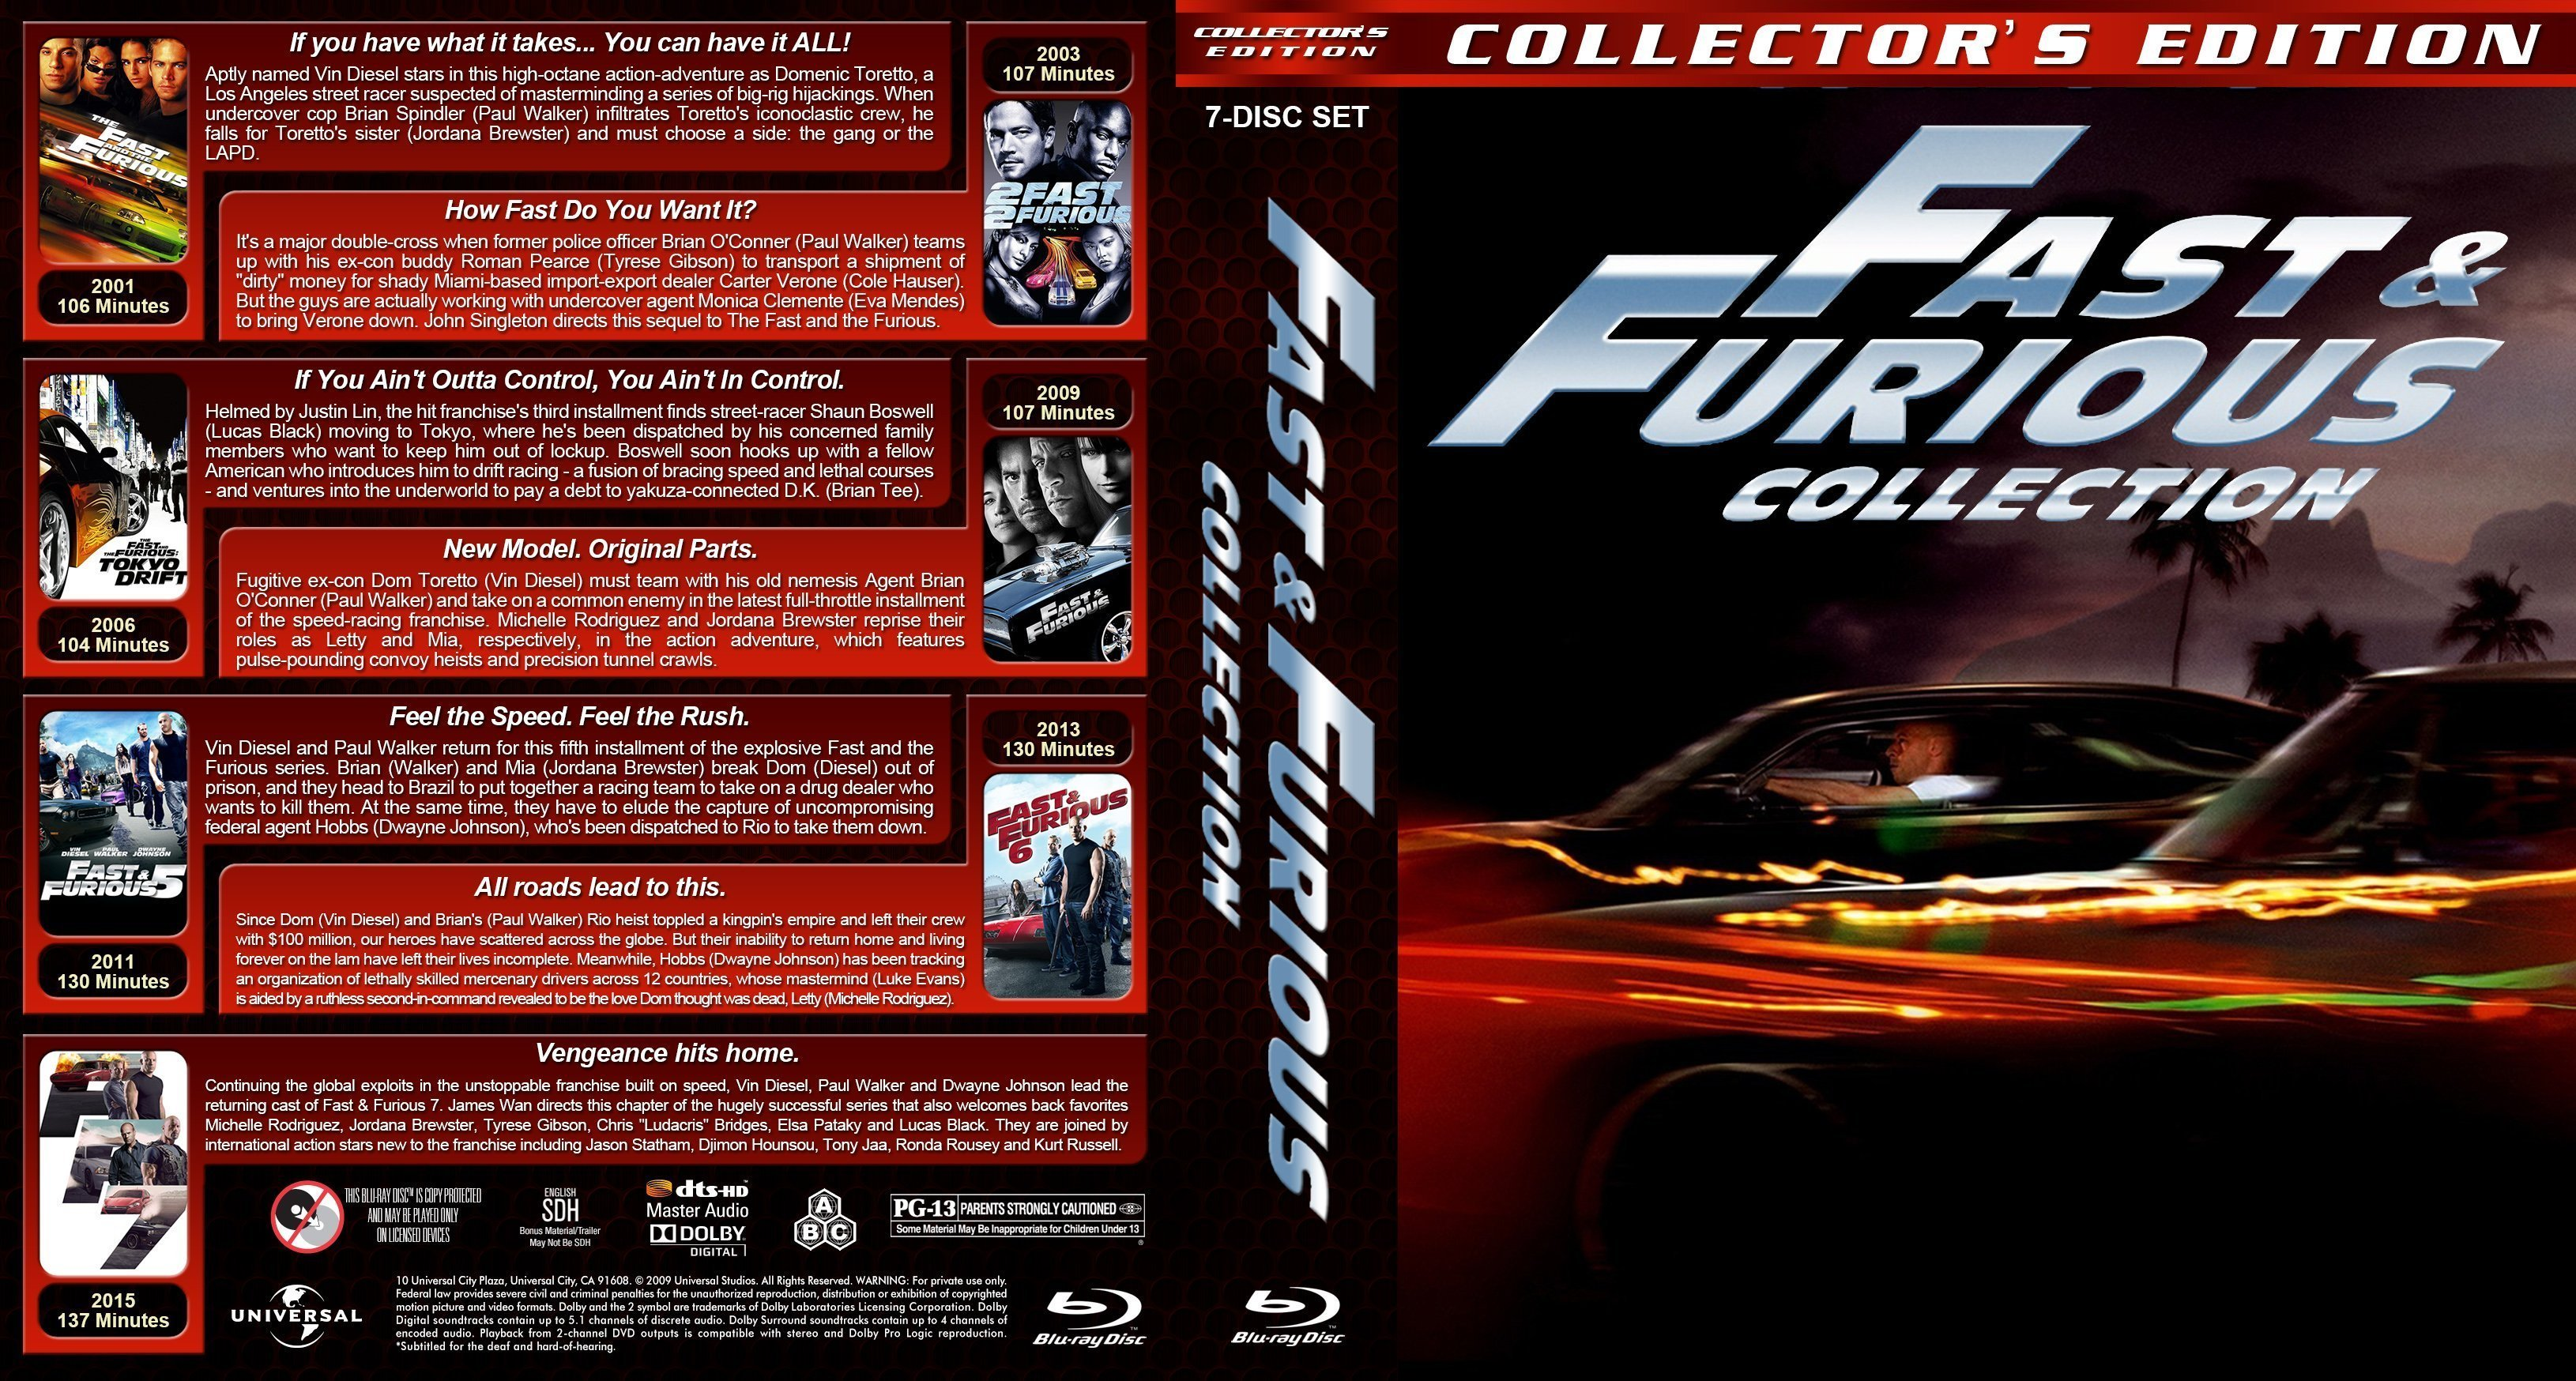 fast furious 7 movie collection 2001 r1 custom blu ray covers dvd covers and labels. Black Bedroom Furniture Sets. Home Design Ideas